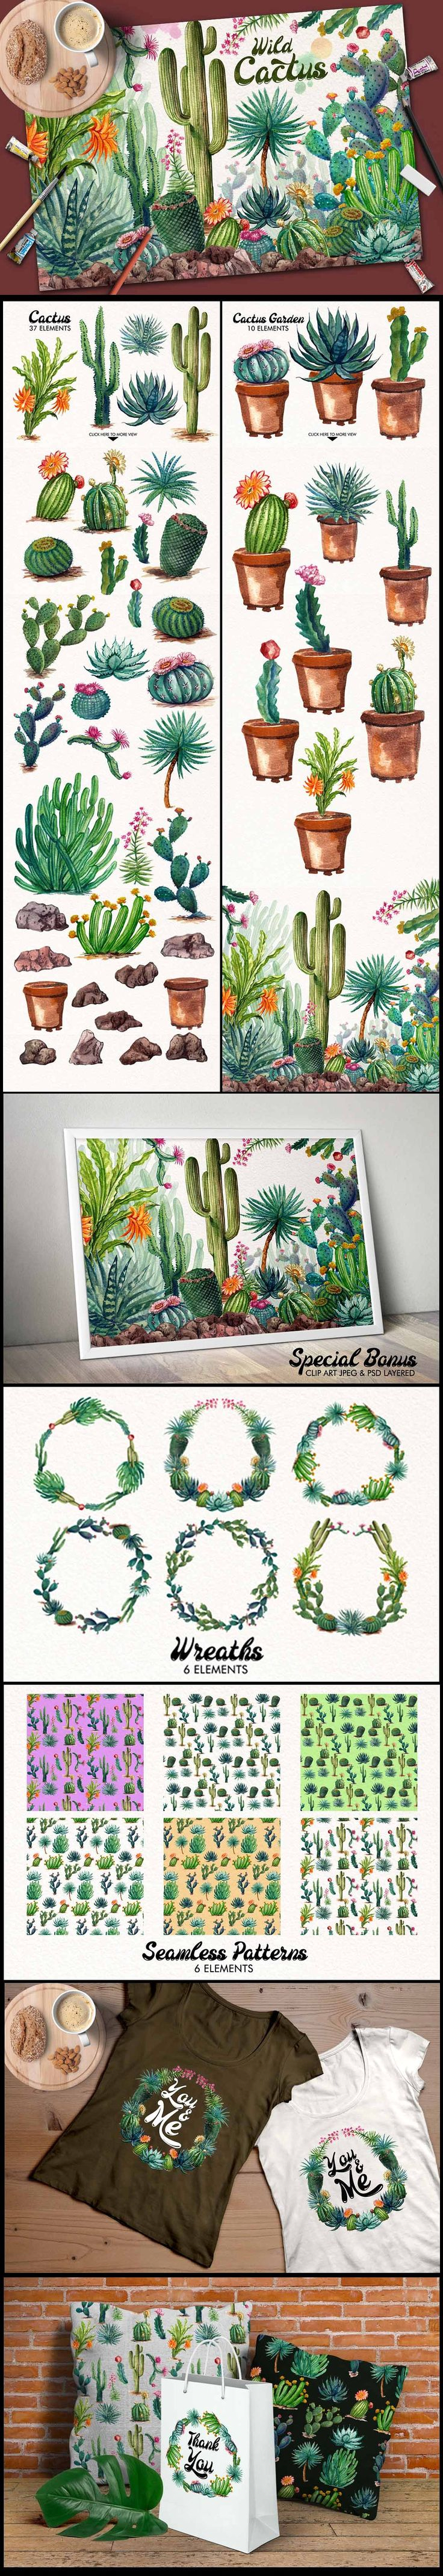 Wow...I really like this long infographic!  The cactii are beautifull too. ....Watercolor Cactuses by iGRAPHOBIA on @creativemarket